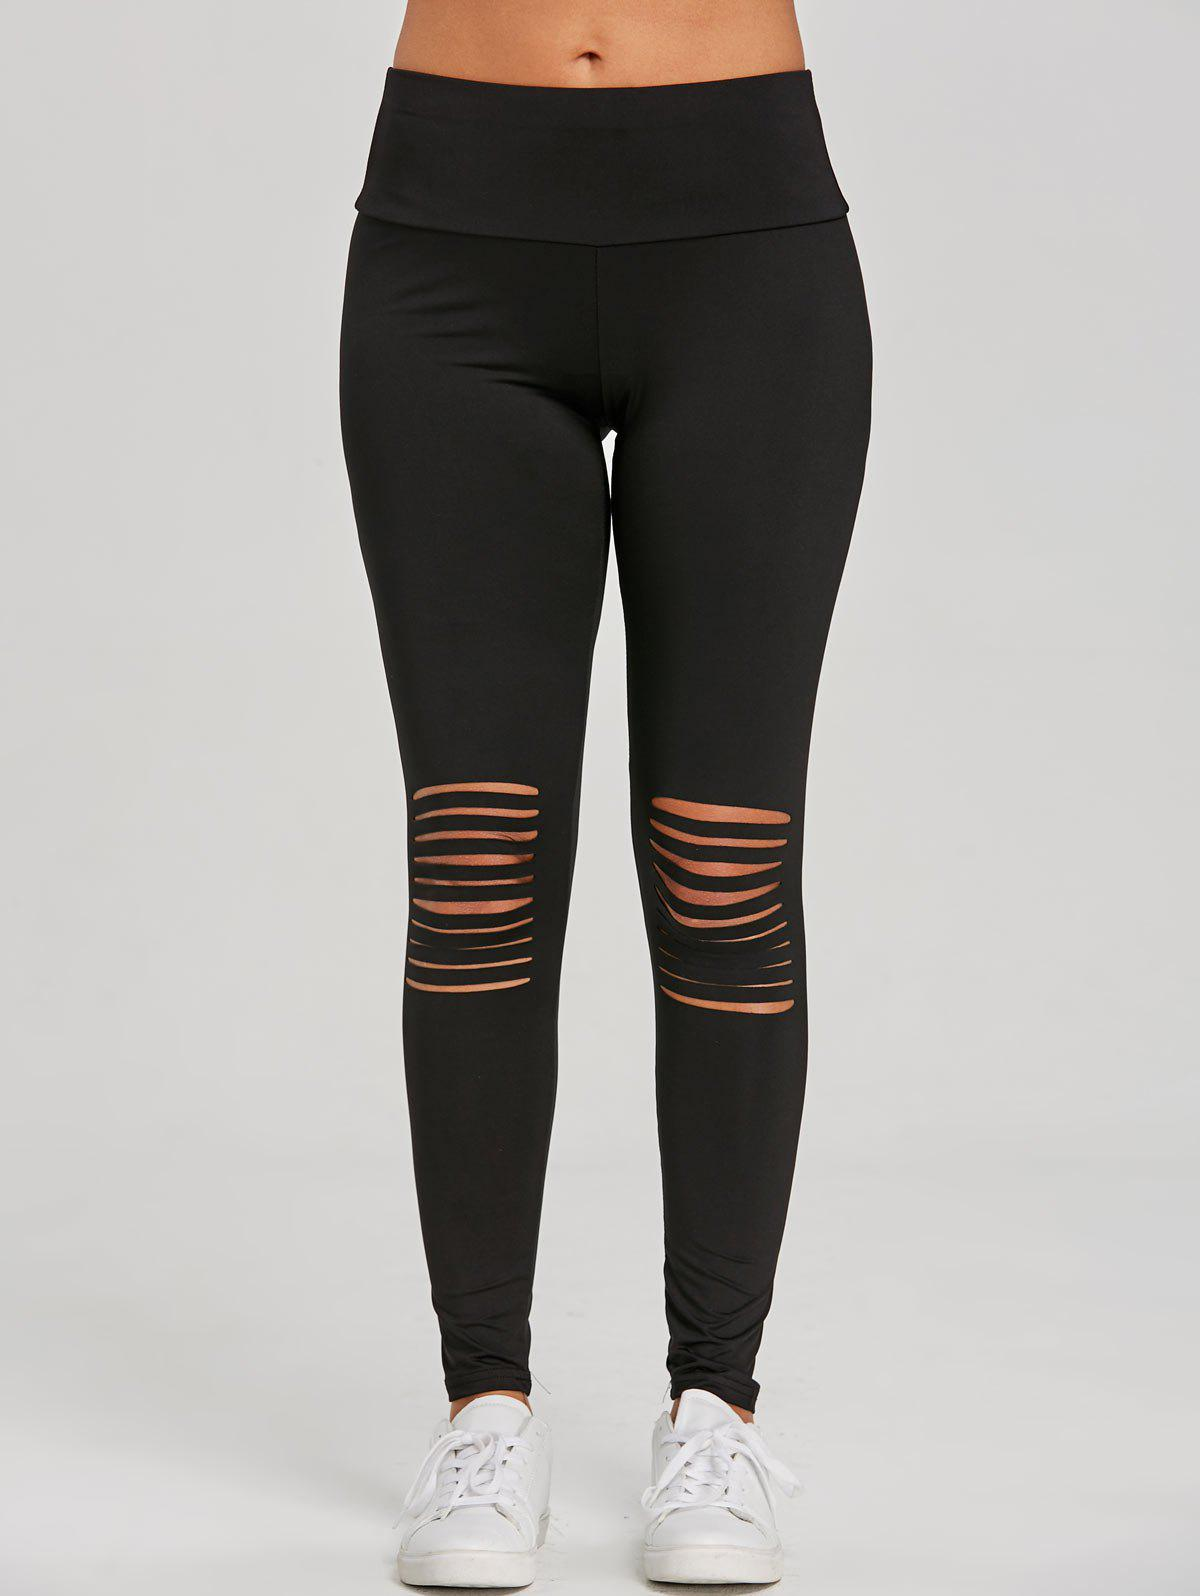 New Distressed Skinny Workout Leggings